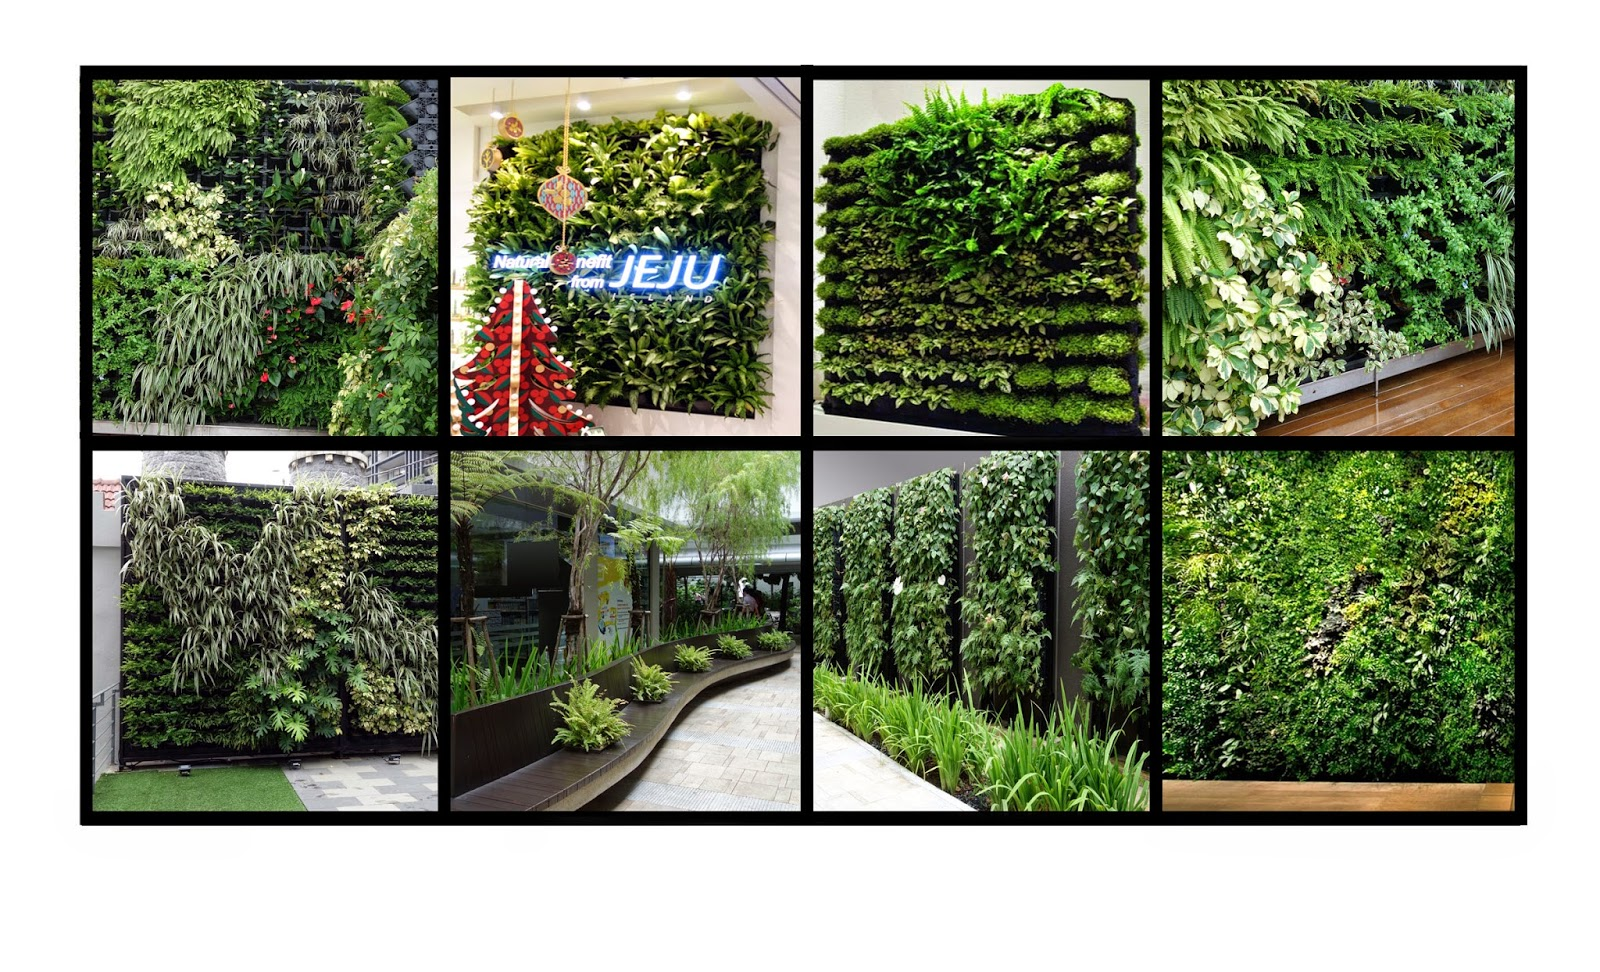 Backyard Nursery System : Innovative Interior and Landscape Products and Services by Technic